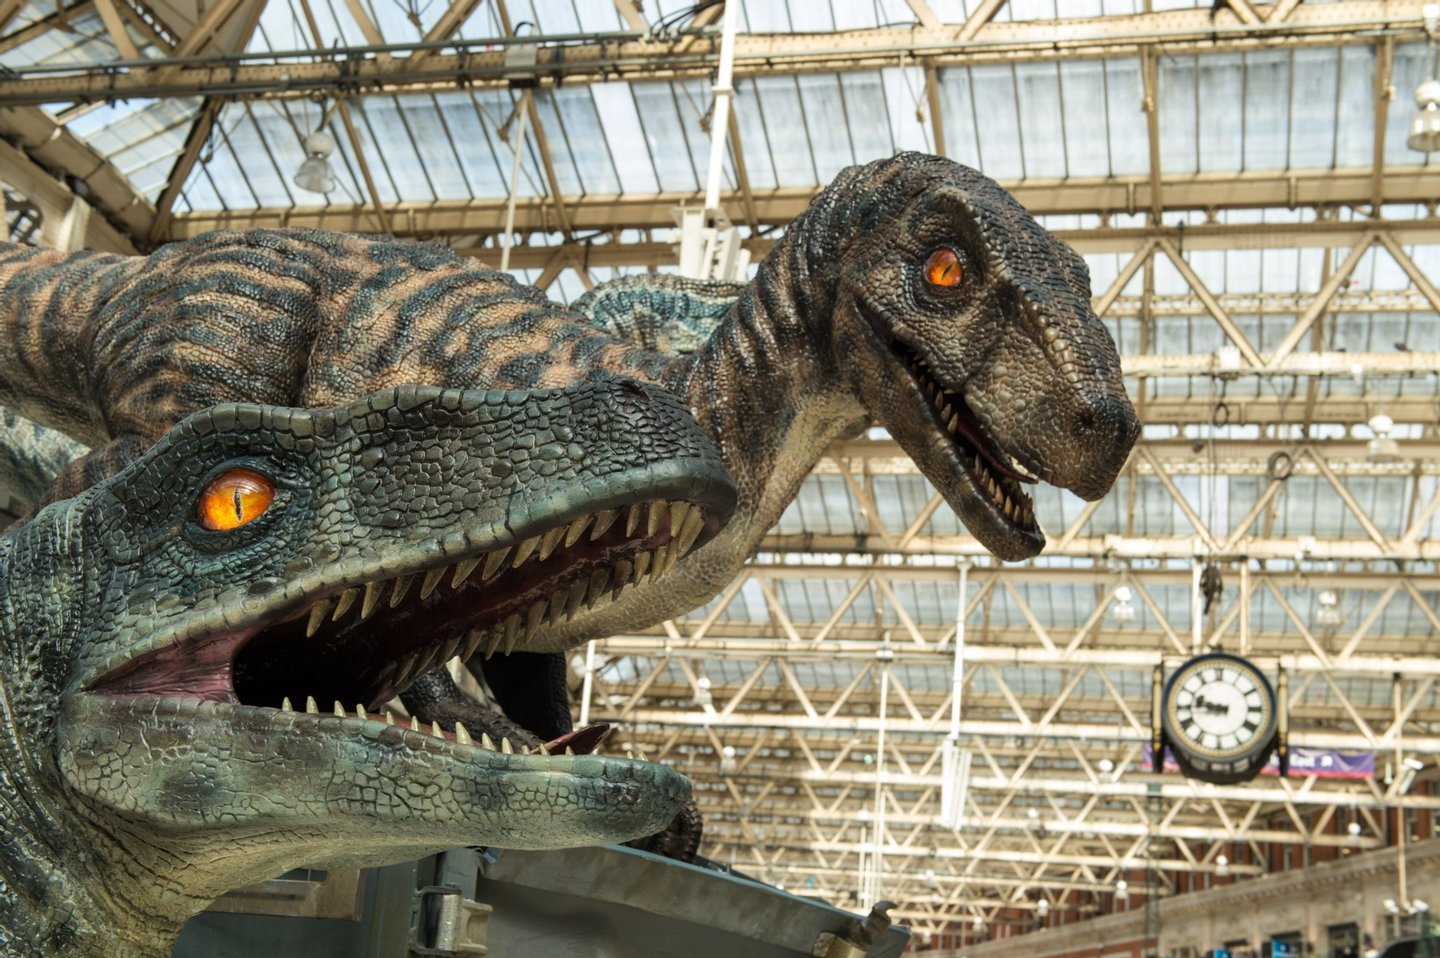 LONDON, ENGLAND - JUNE 08:  A general view of the dinosaurs during the 'Jurassic World' take over at Waterloo Station on June 8, 2015 in London, England.  (Photo by Ian Gavan/Getty Images)